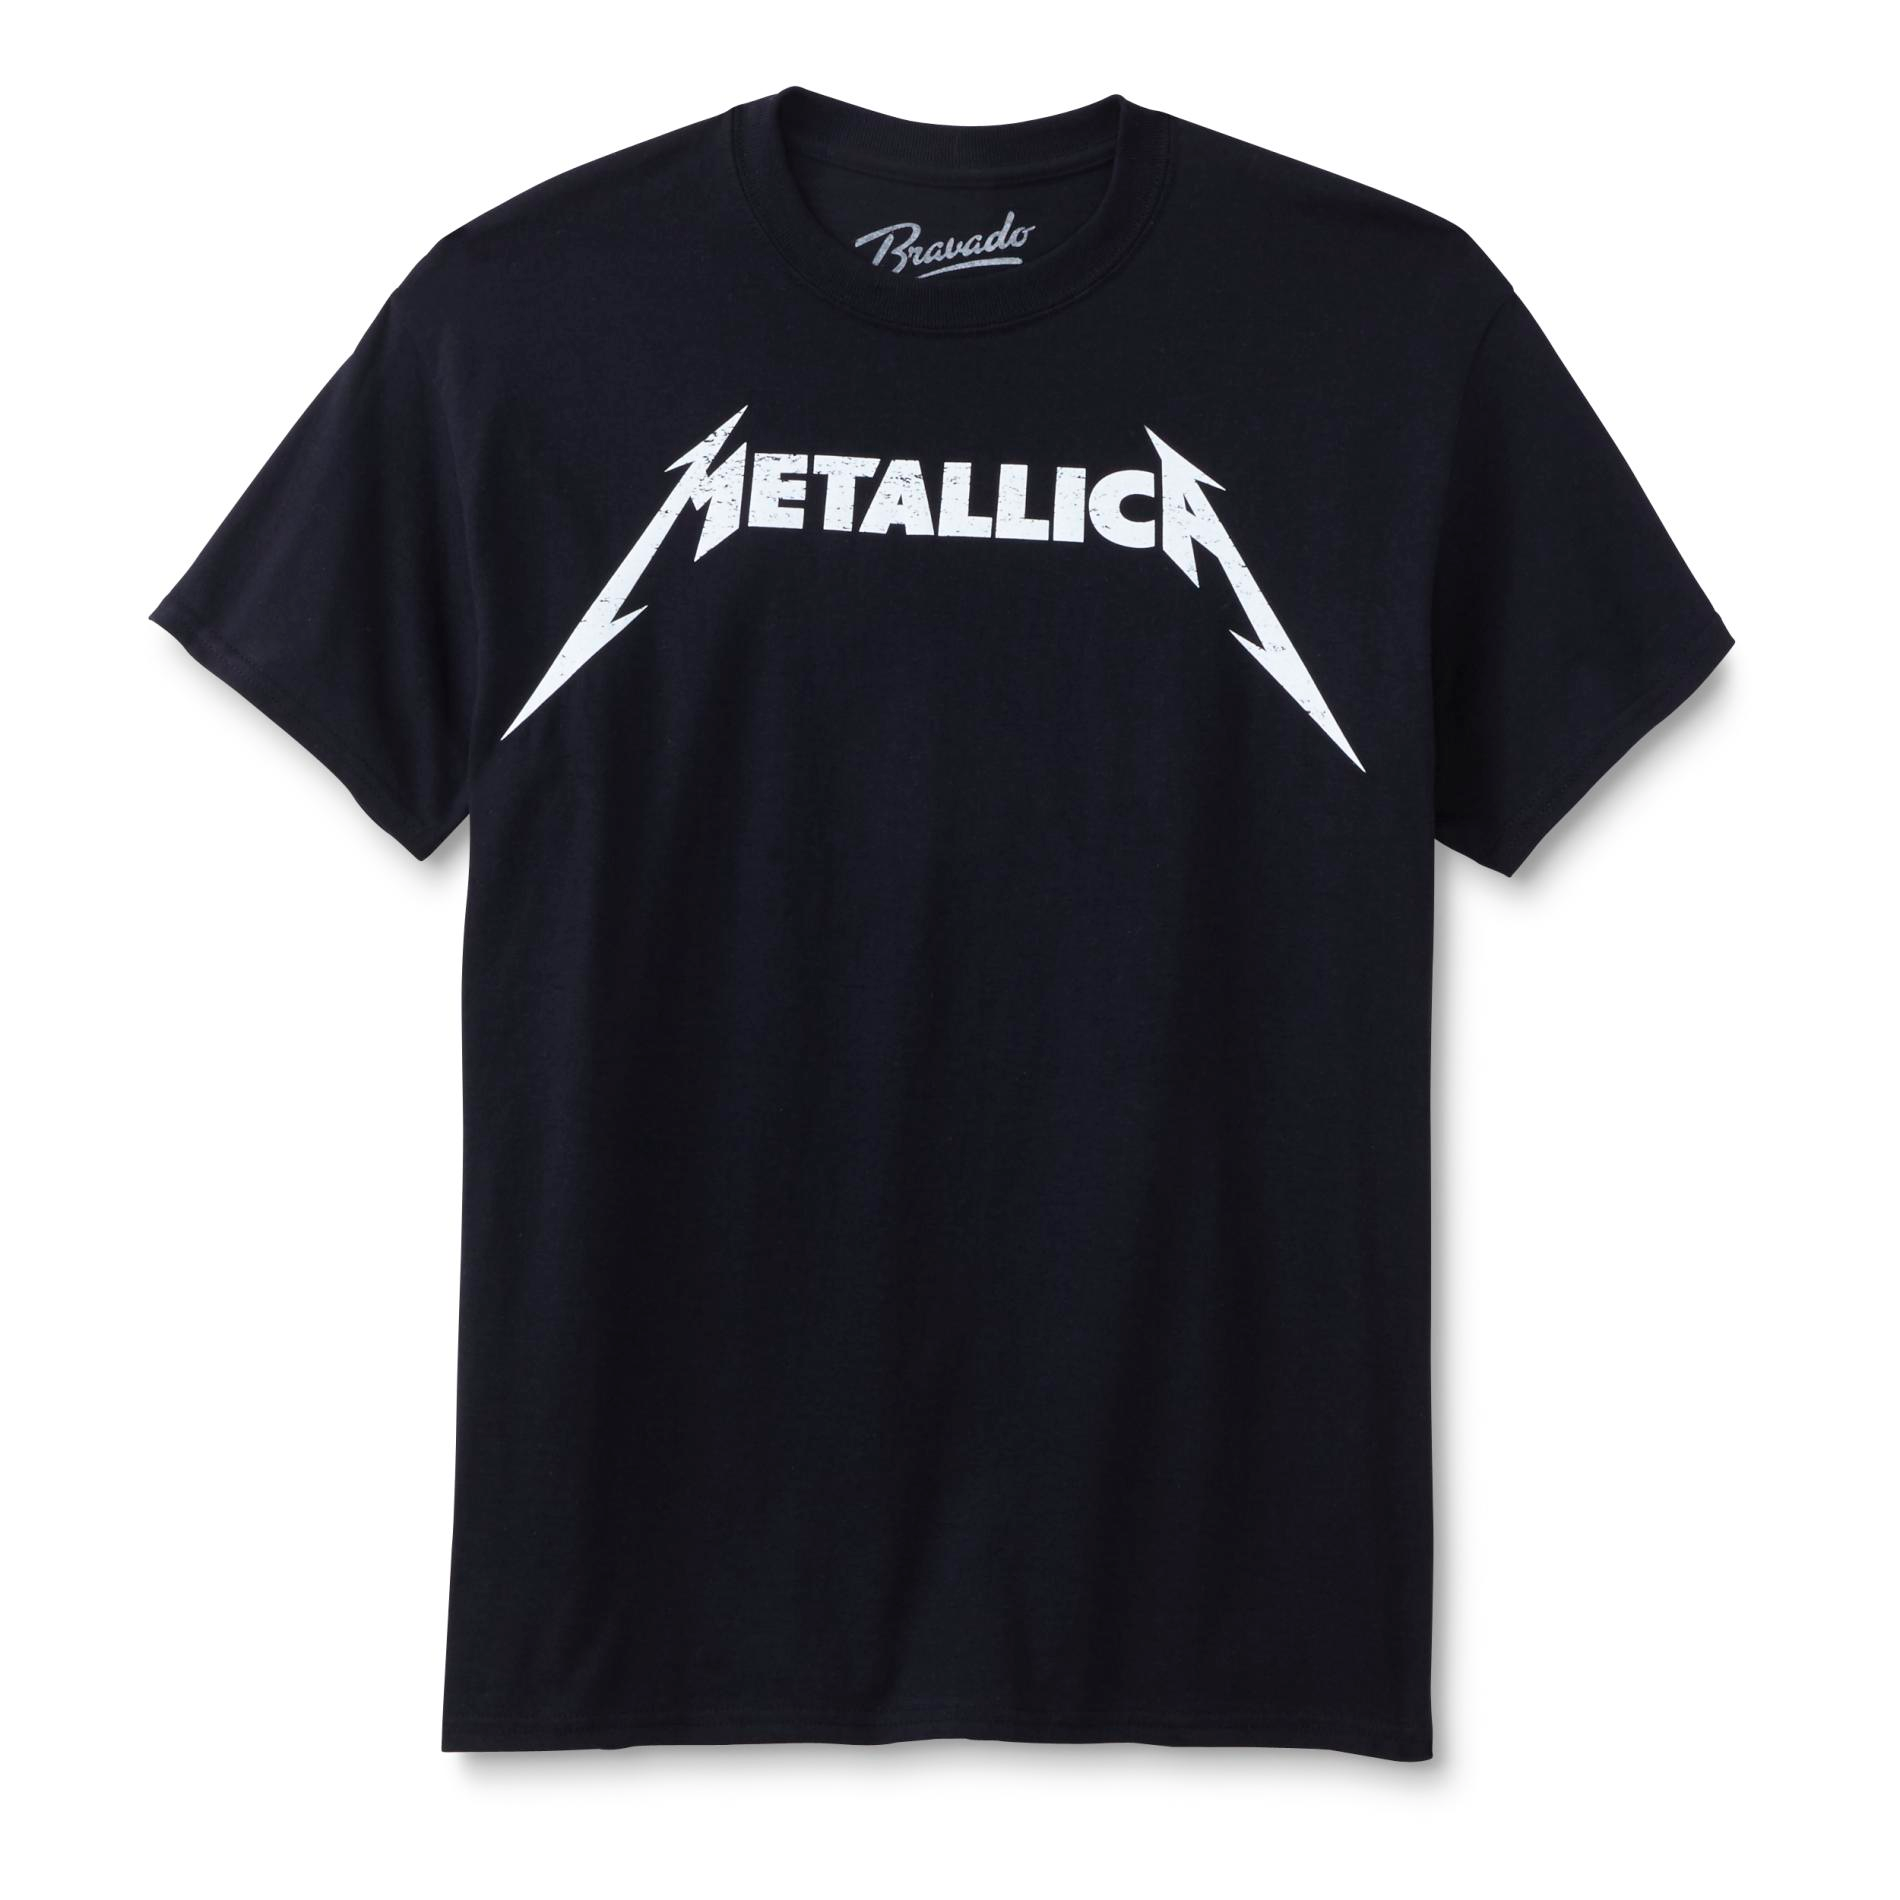 Iconic t shirt design - Metallica T-shirt